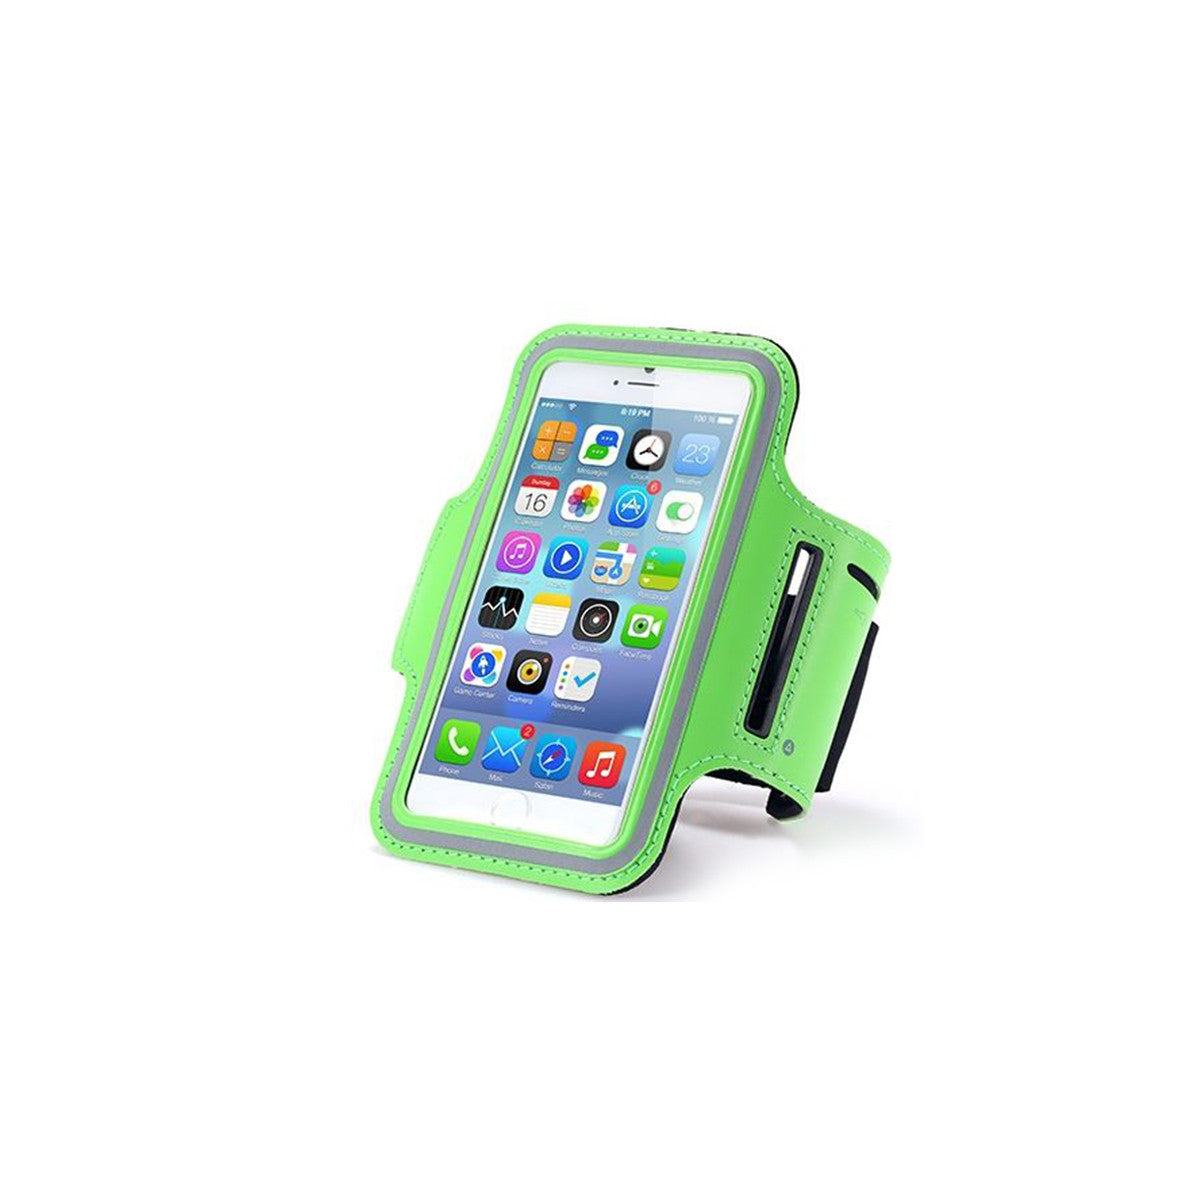 "Sport Gym Running Jogging Armband For Apple iPhone 6 Plus 5.5"" green"